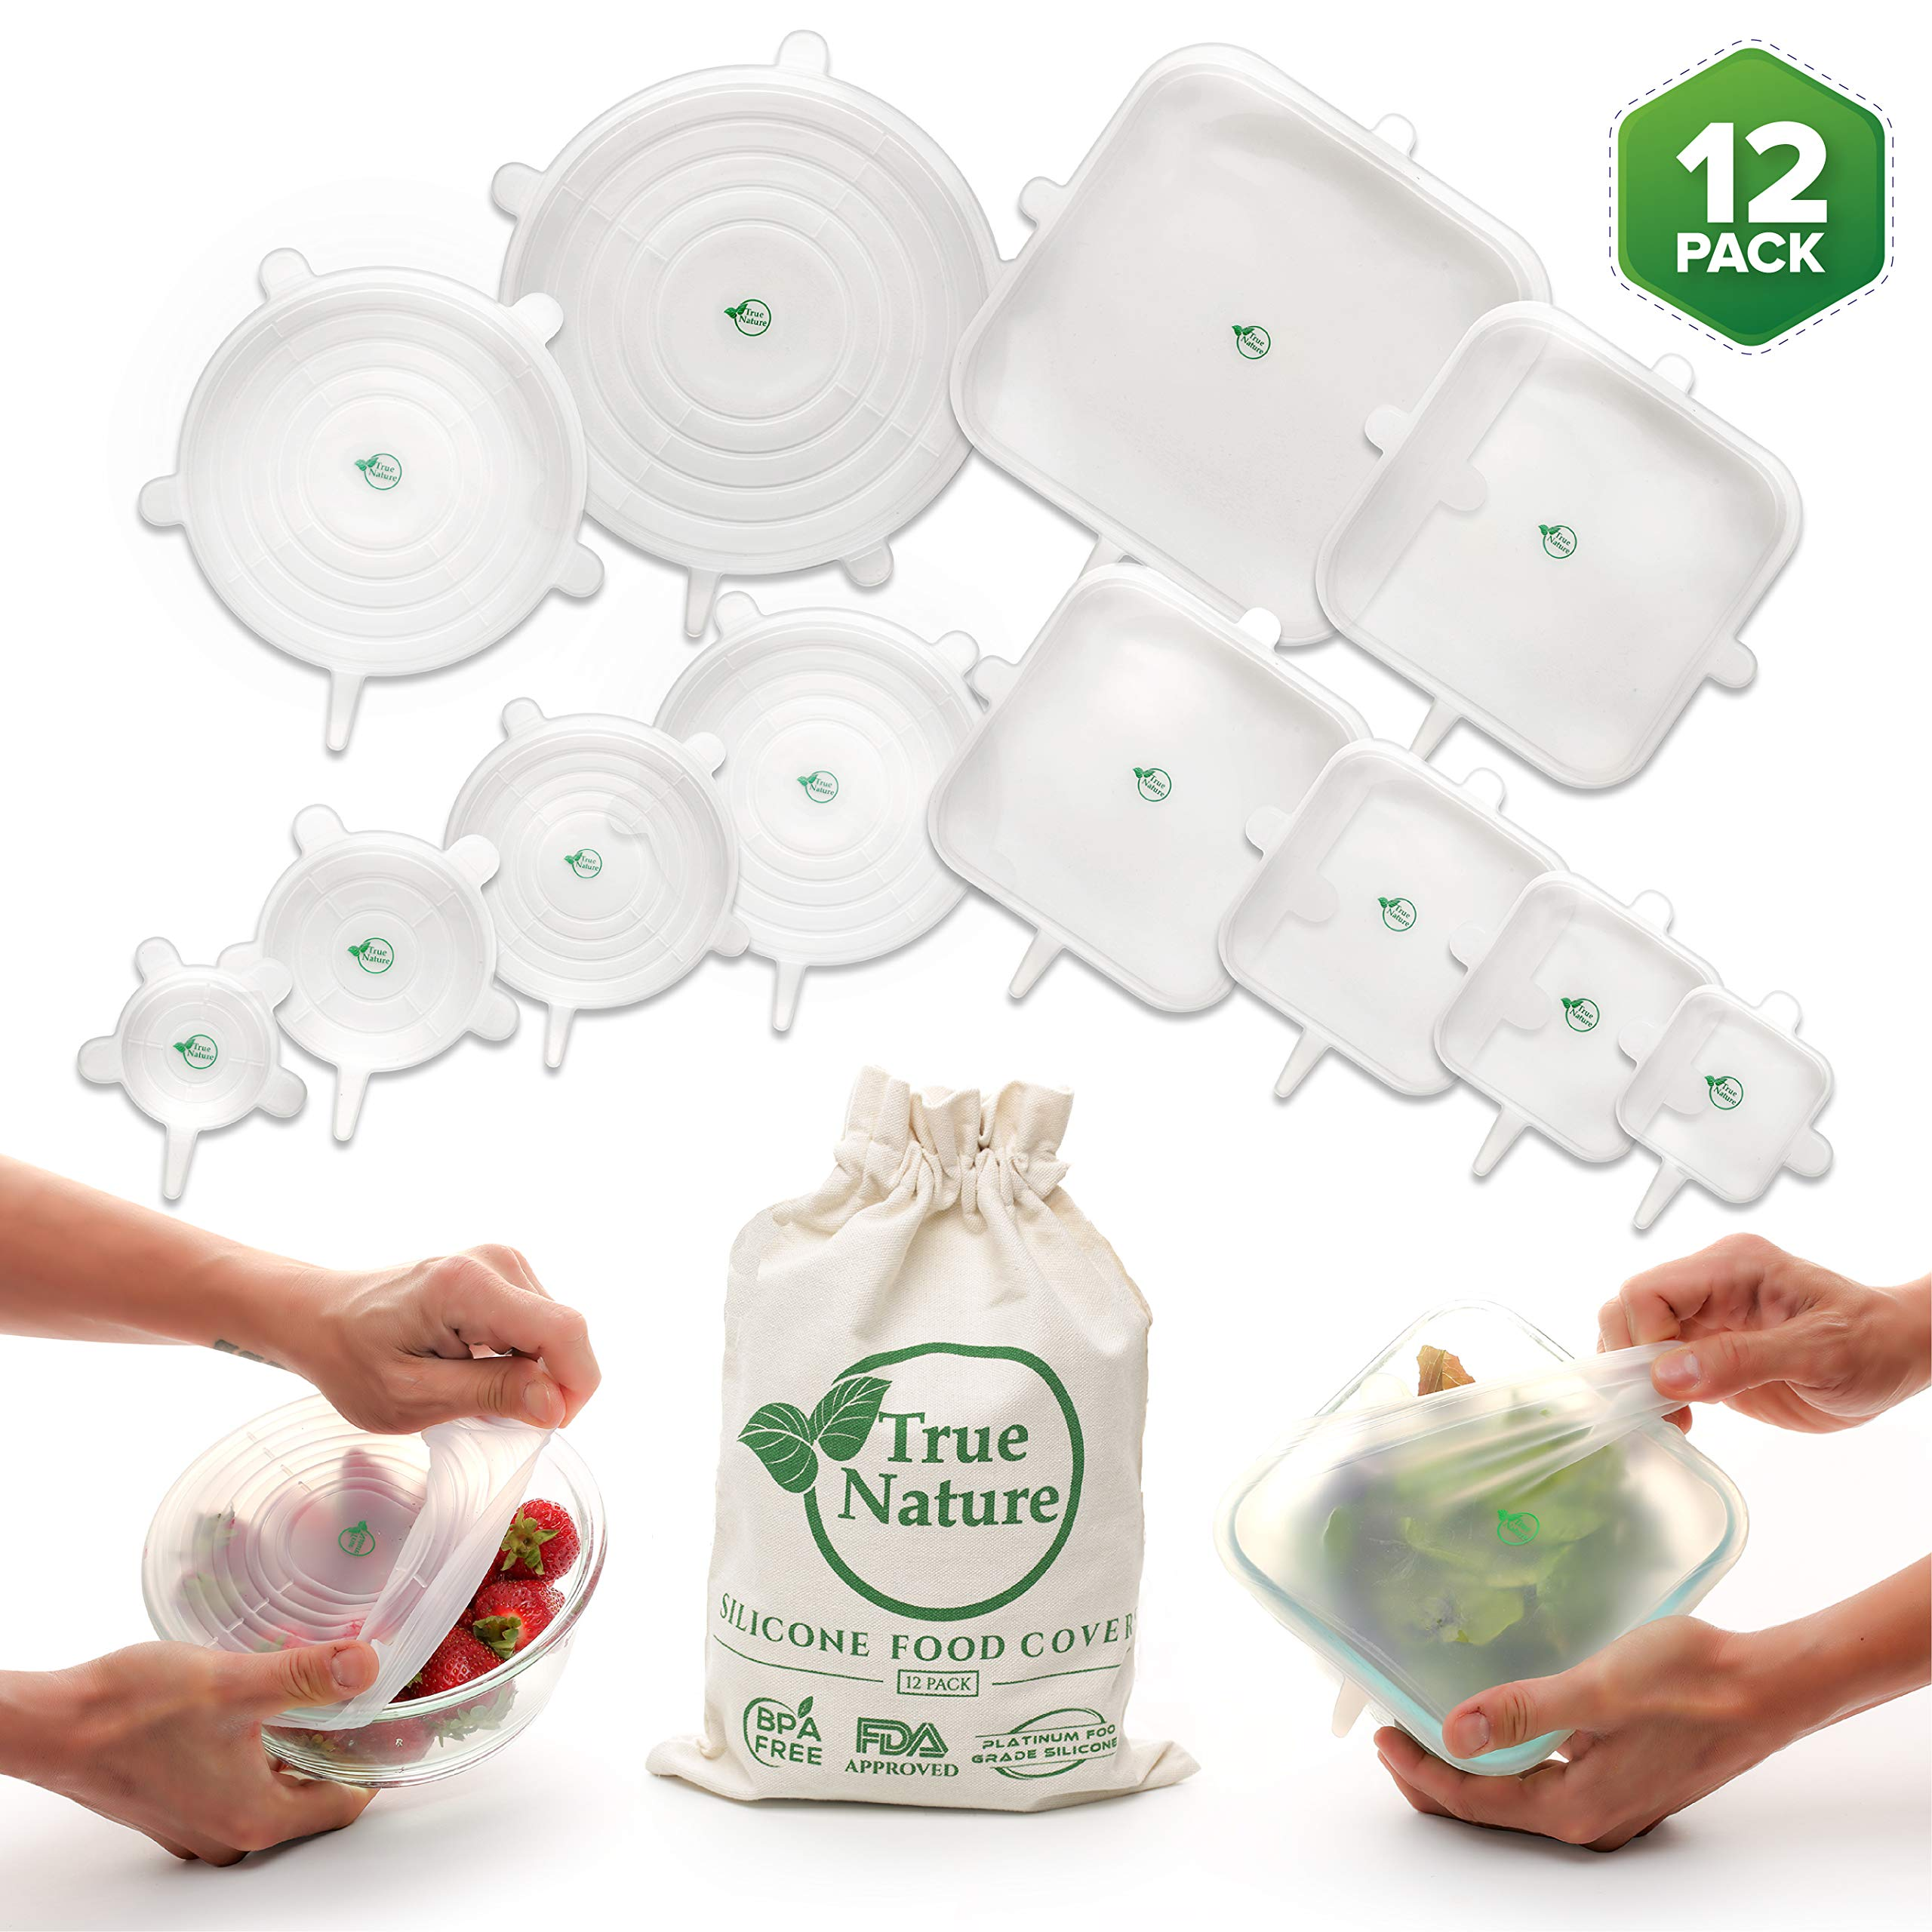 True Nature Silicone Stretch Food Covers 12-Pack | 100% Platinum Food Grade Silicone | BPA-Free | Flexible, Reusable, Durable & Expandable | Eco-Friendly Bowl Lids | Microwave, Oven & Dishwasher Safe